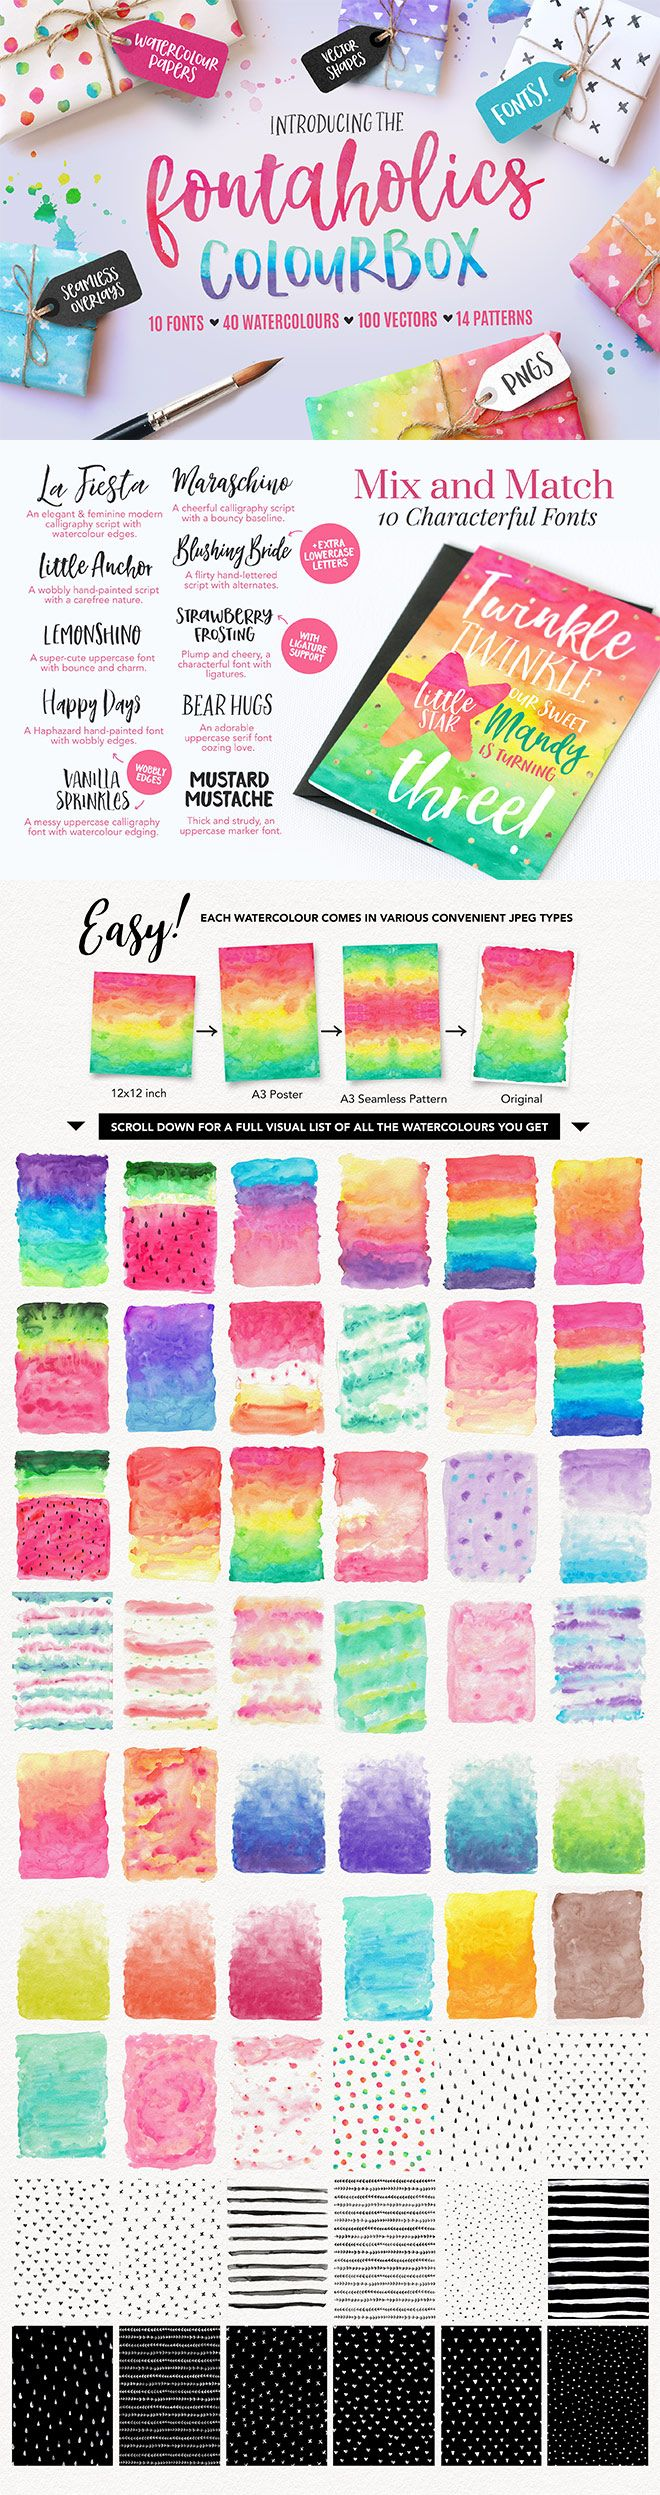 How gorgeous are these hand lettered fonts and watercolour textures? This pack even comes with extra hand-drawn vectors and pattern overlays. Imagine all the beautiful greeting cards, stationery, invitations and other designs you can create with these resources...